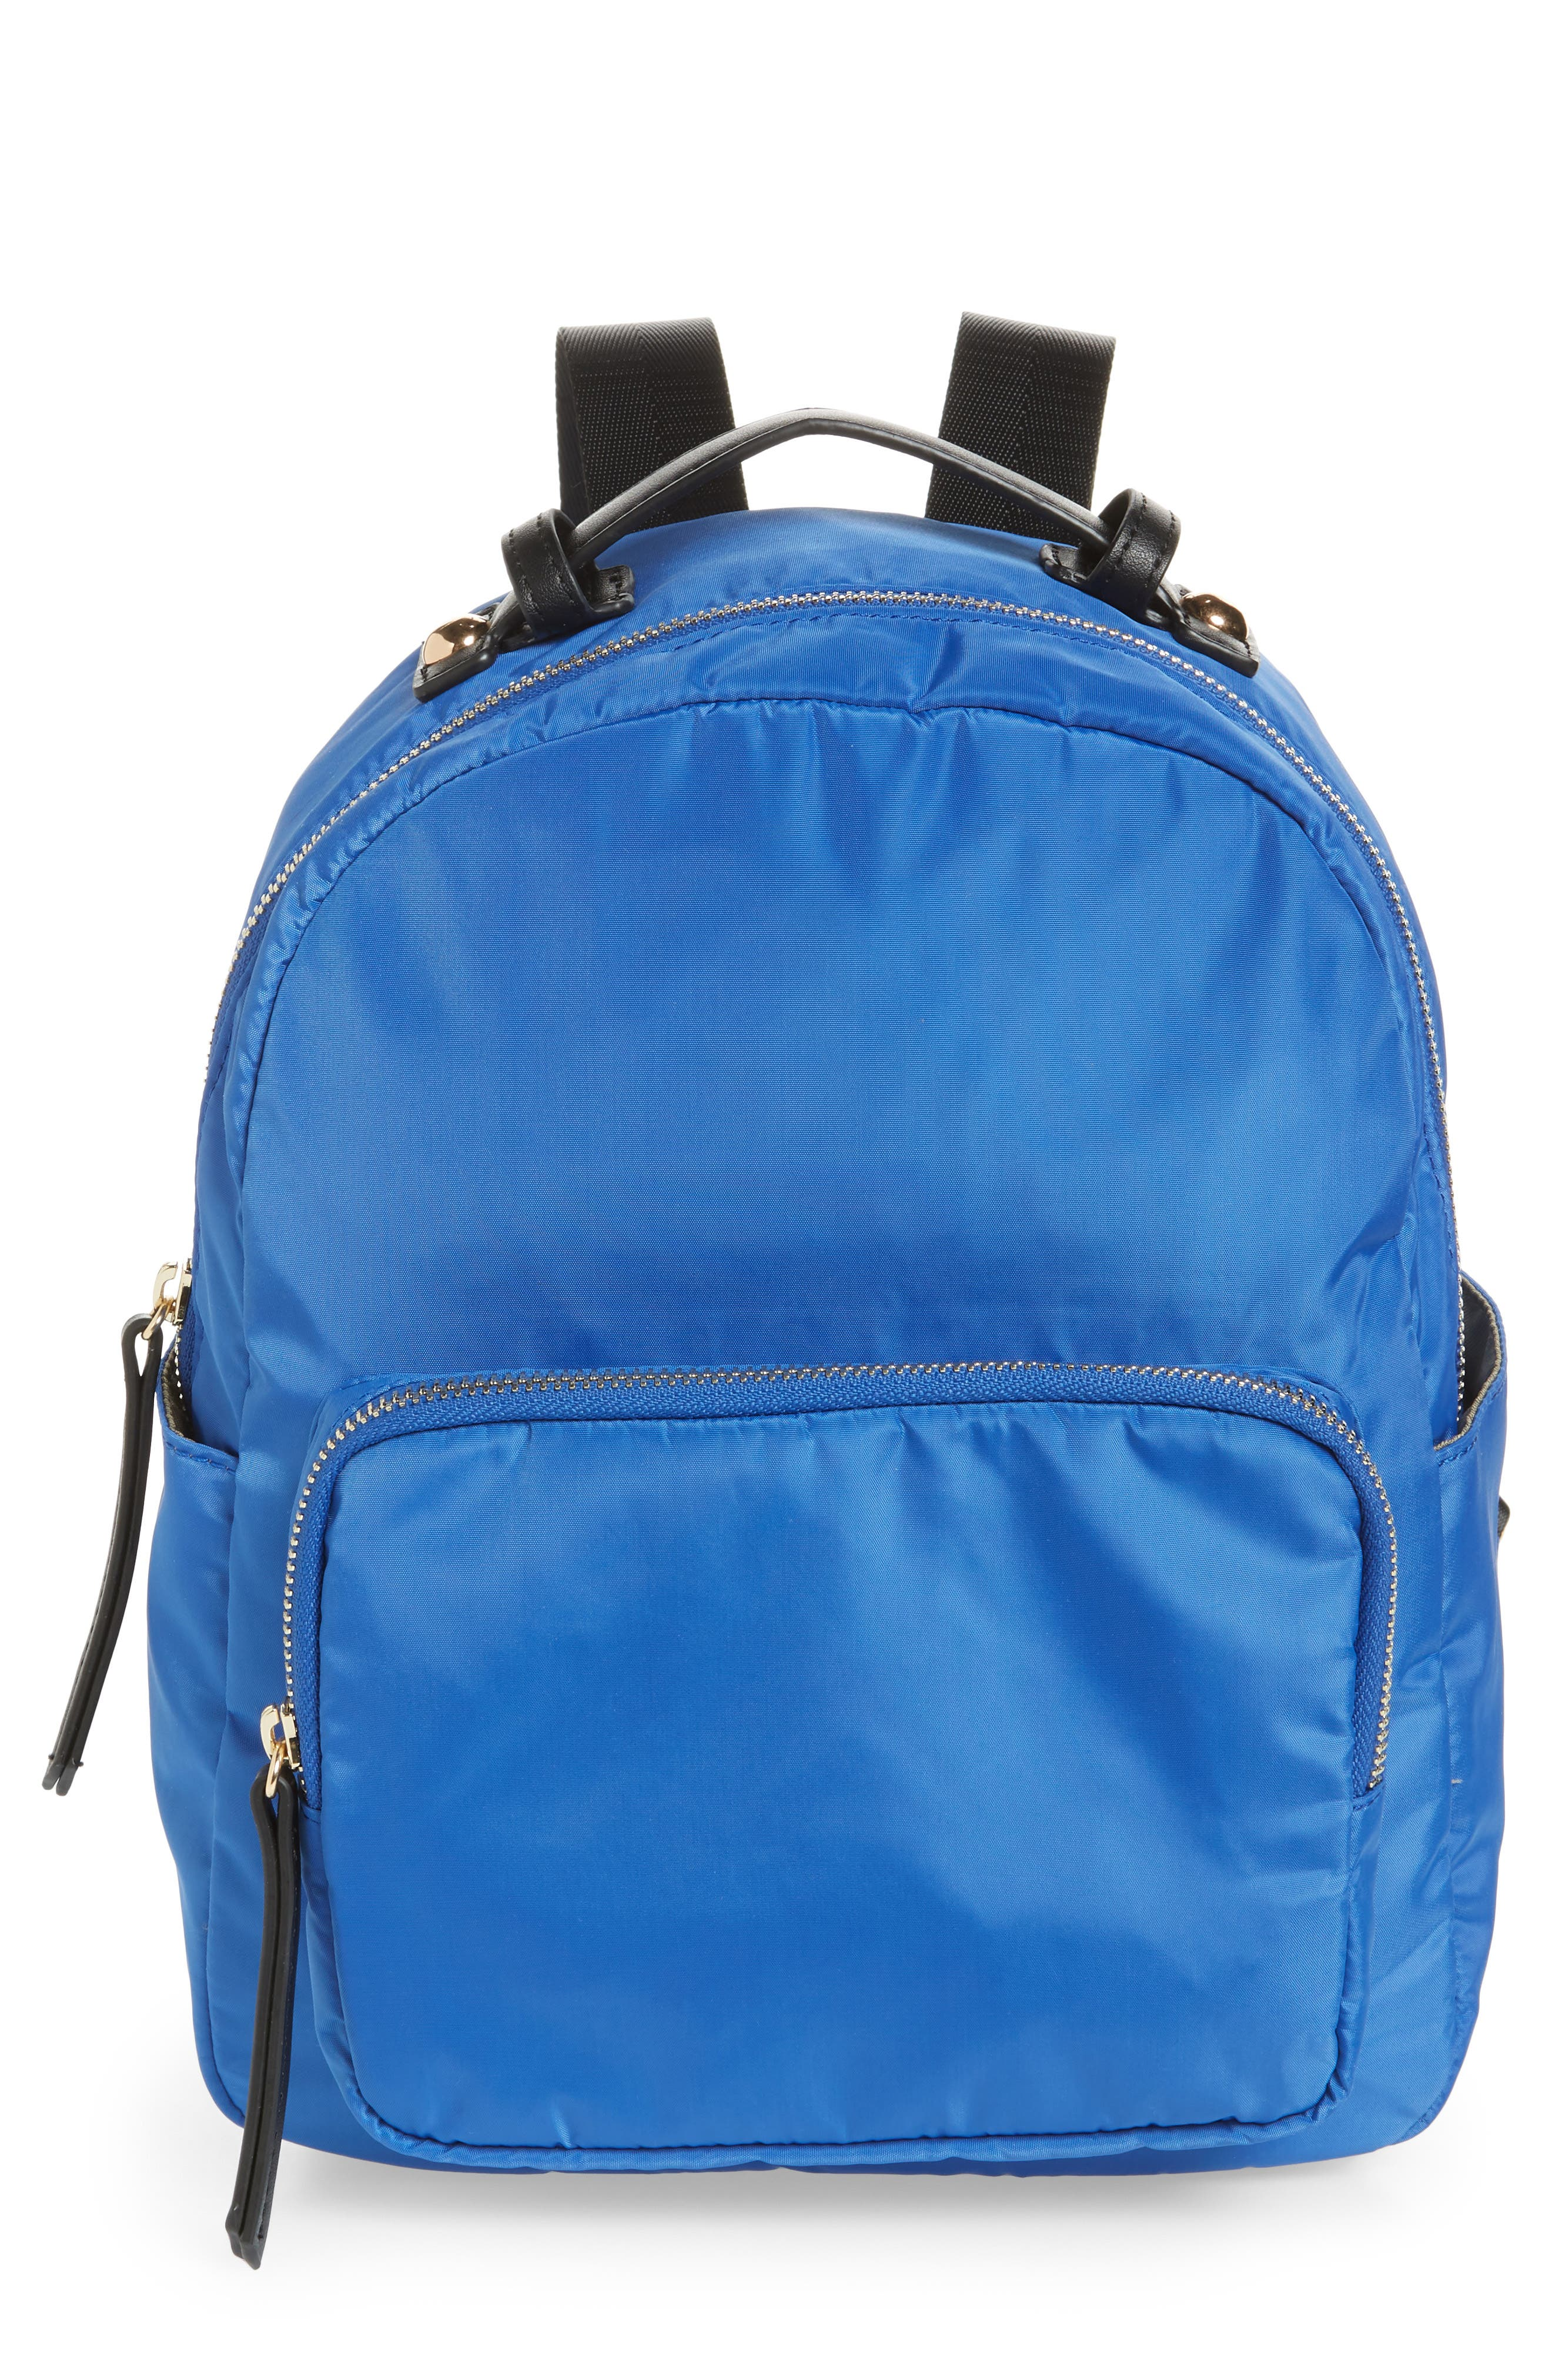 Nylon Backpack,                             Main thumbnail 1, color,                             Cobalt